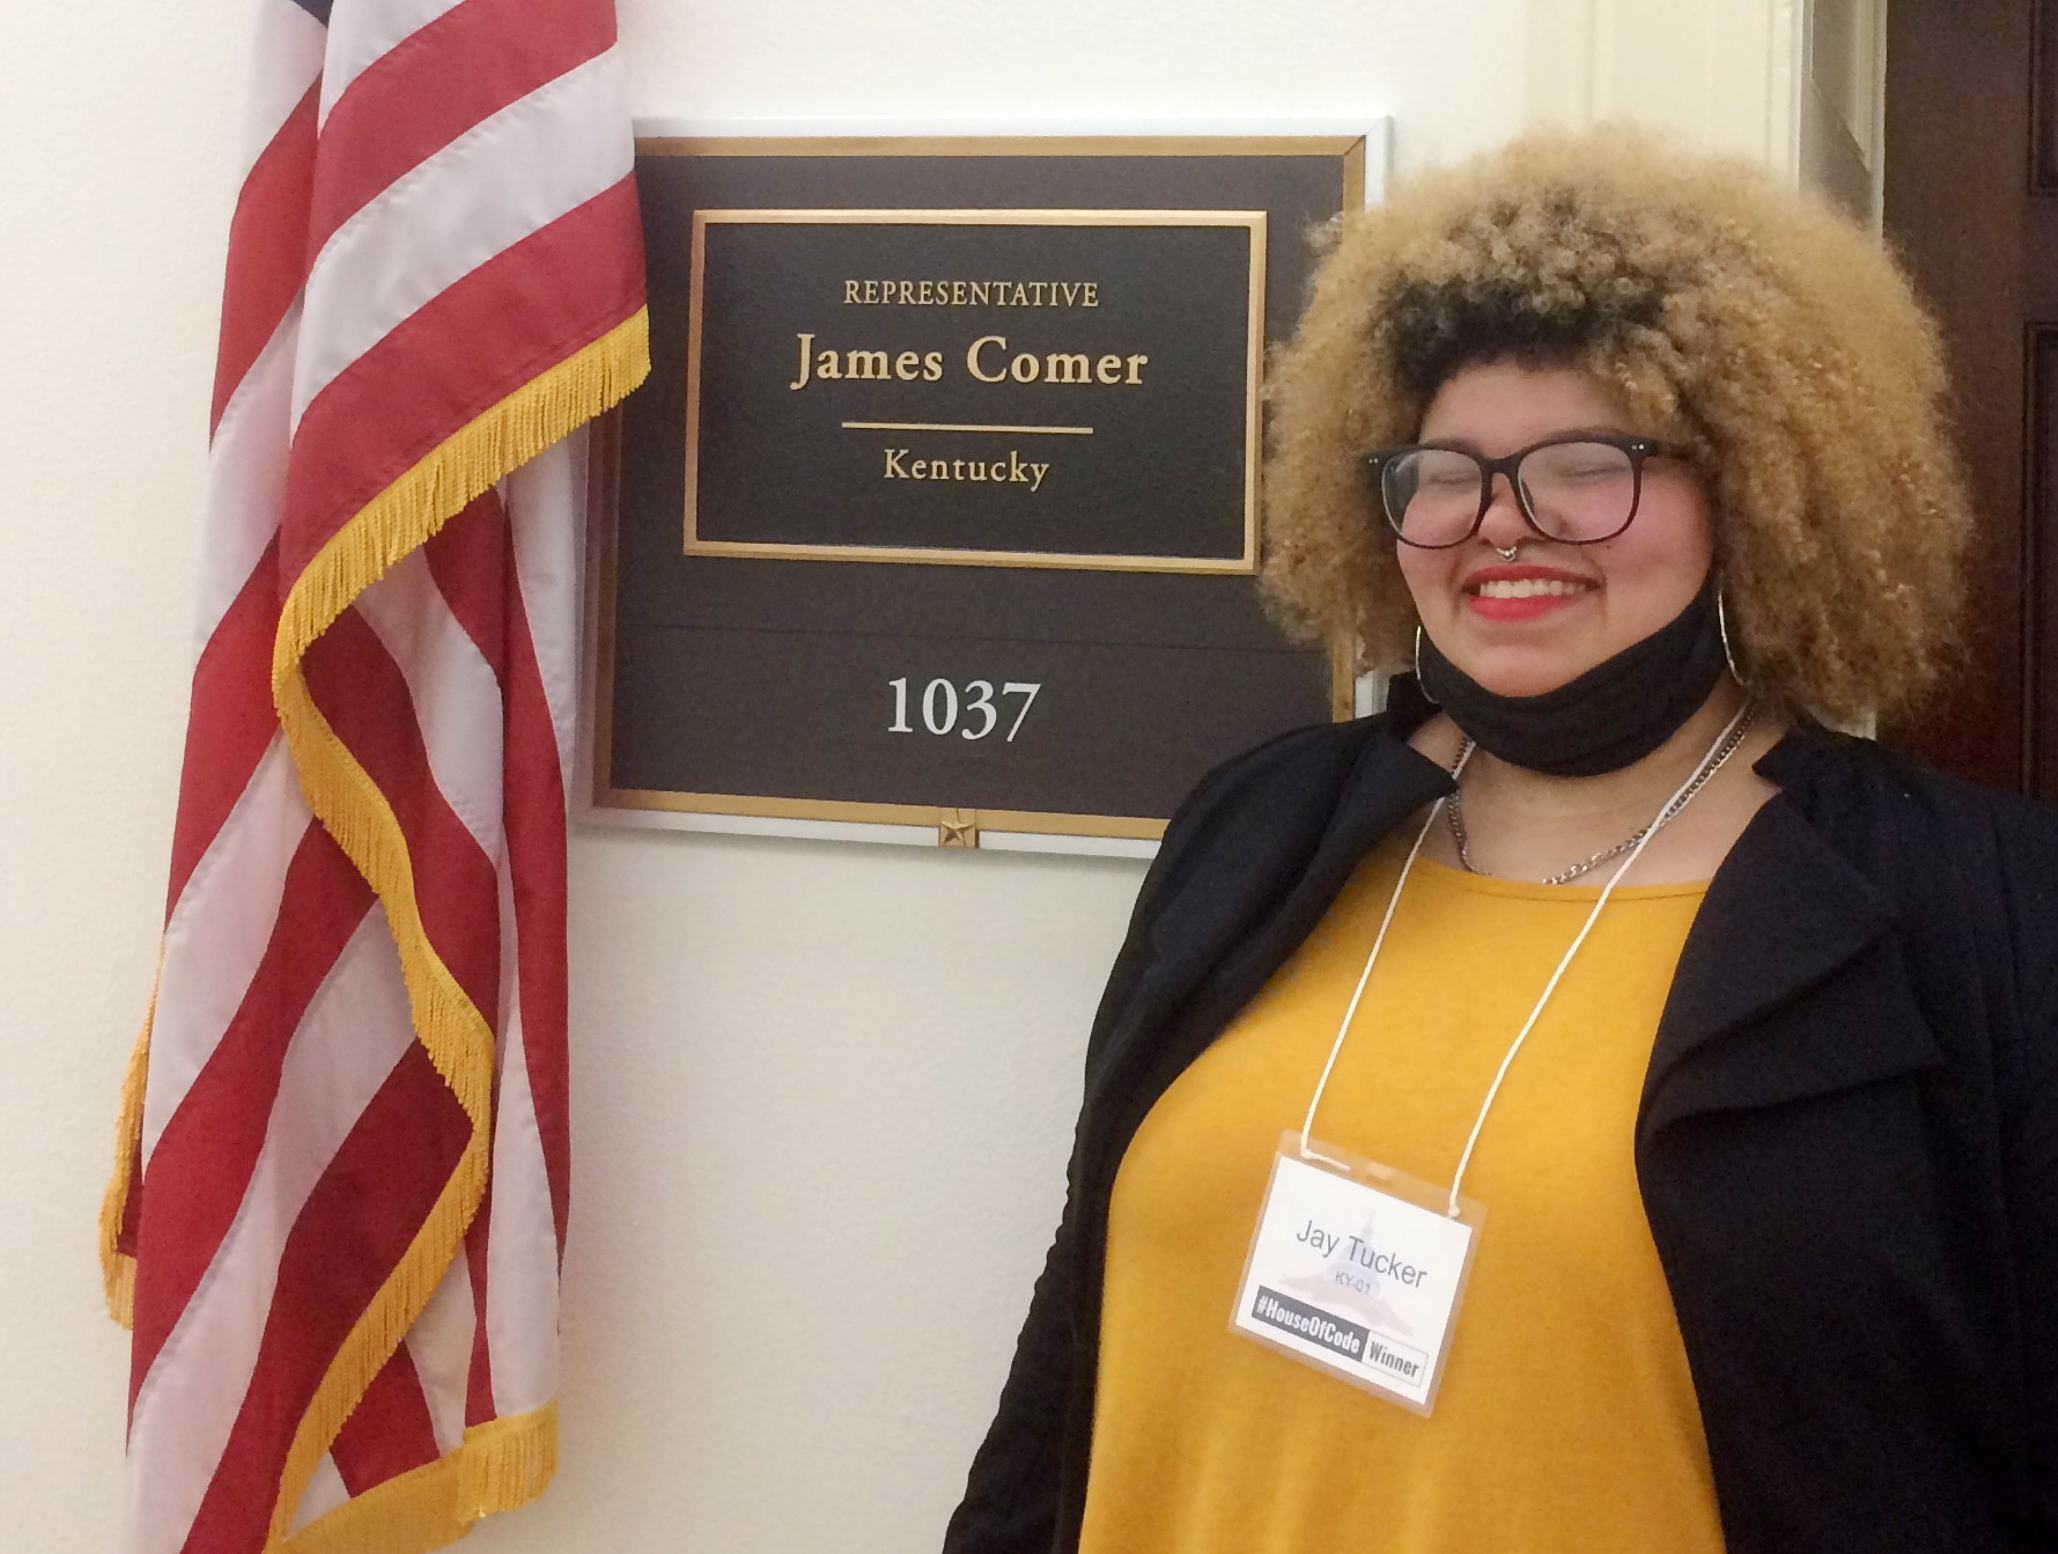 Campbellsville High School senior Jay Tucker was recently honored in Washington, D.C., for winning the First District Congressional App Challenge, sponsored by U.S. Rep. James Comer, R-Ky. She met with Comer and took a tour of his office.